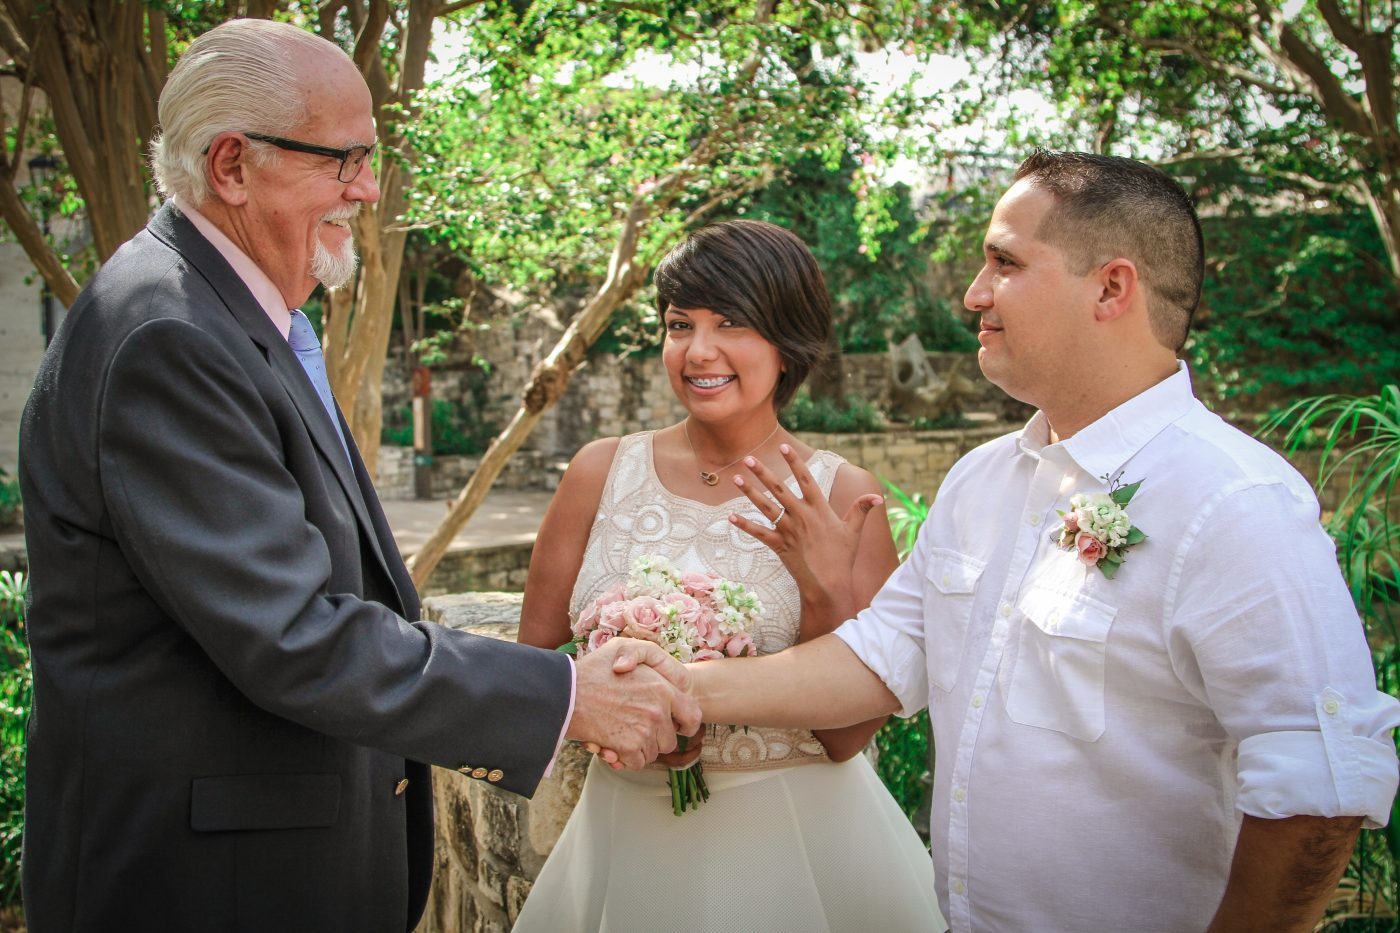 Request A Wedding Officiant I Free Phone Or In Person Consultation